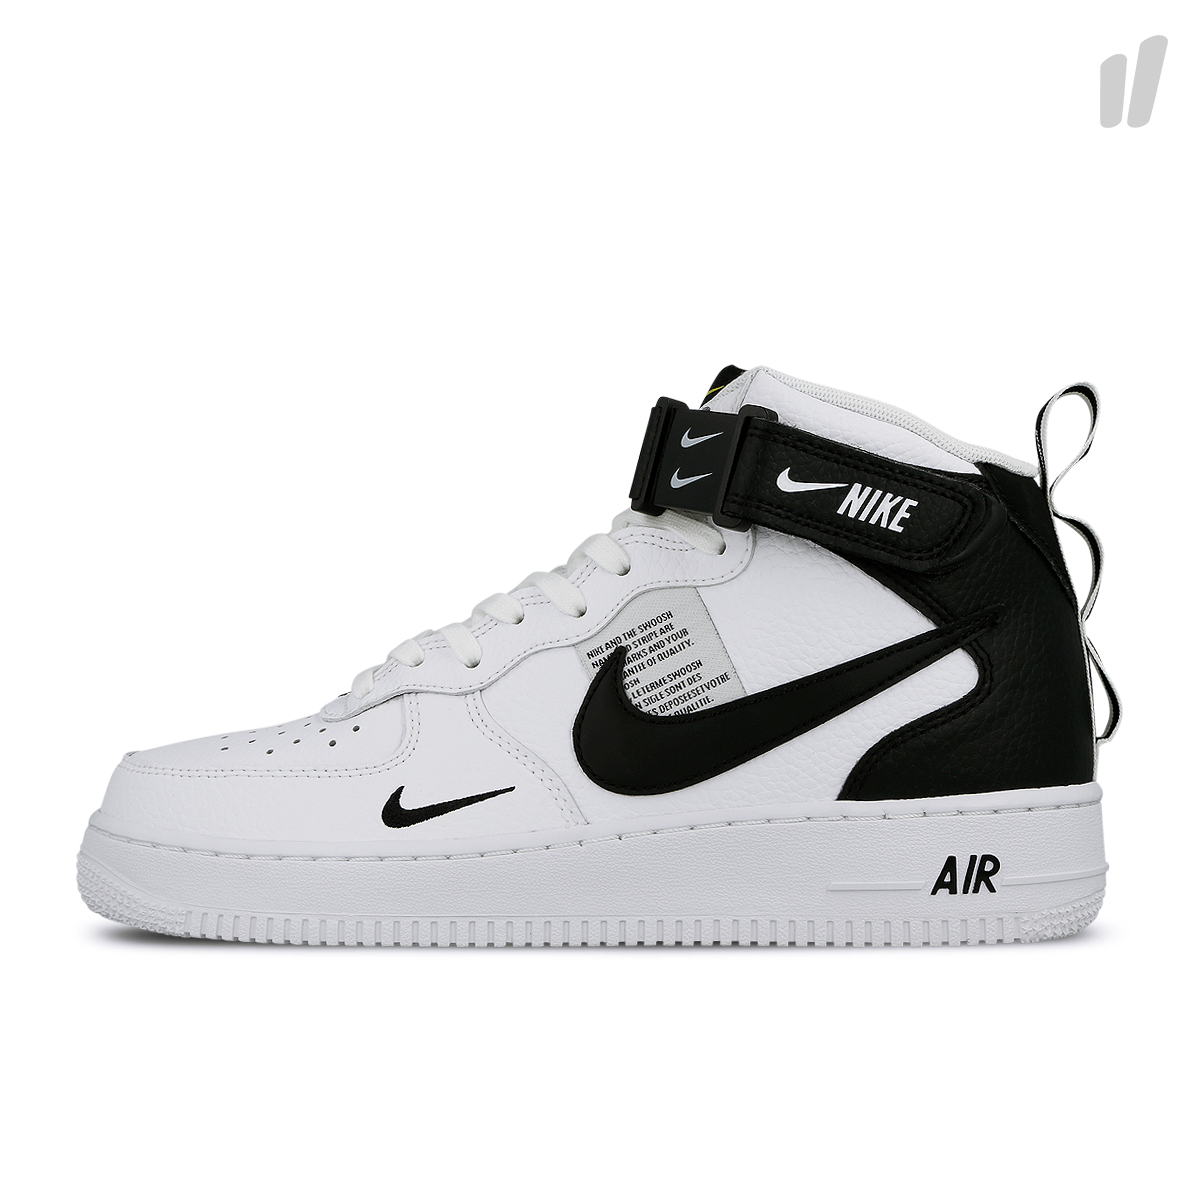 Archive | Nike Air Force 1 Mid '07 |